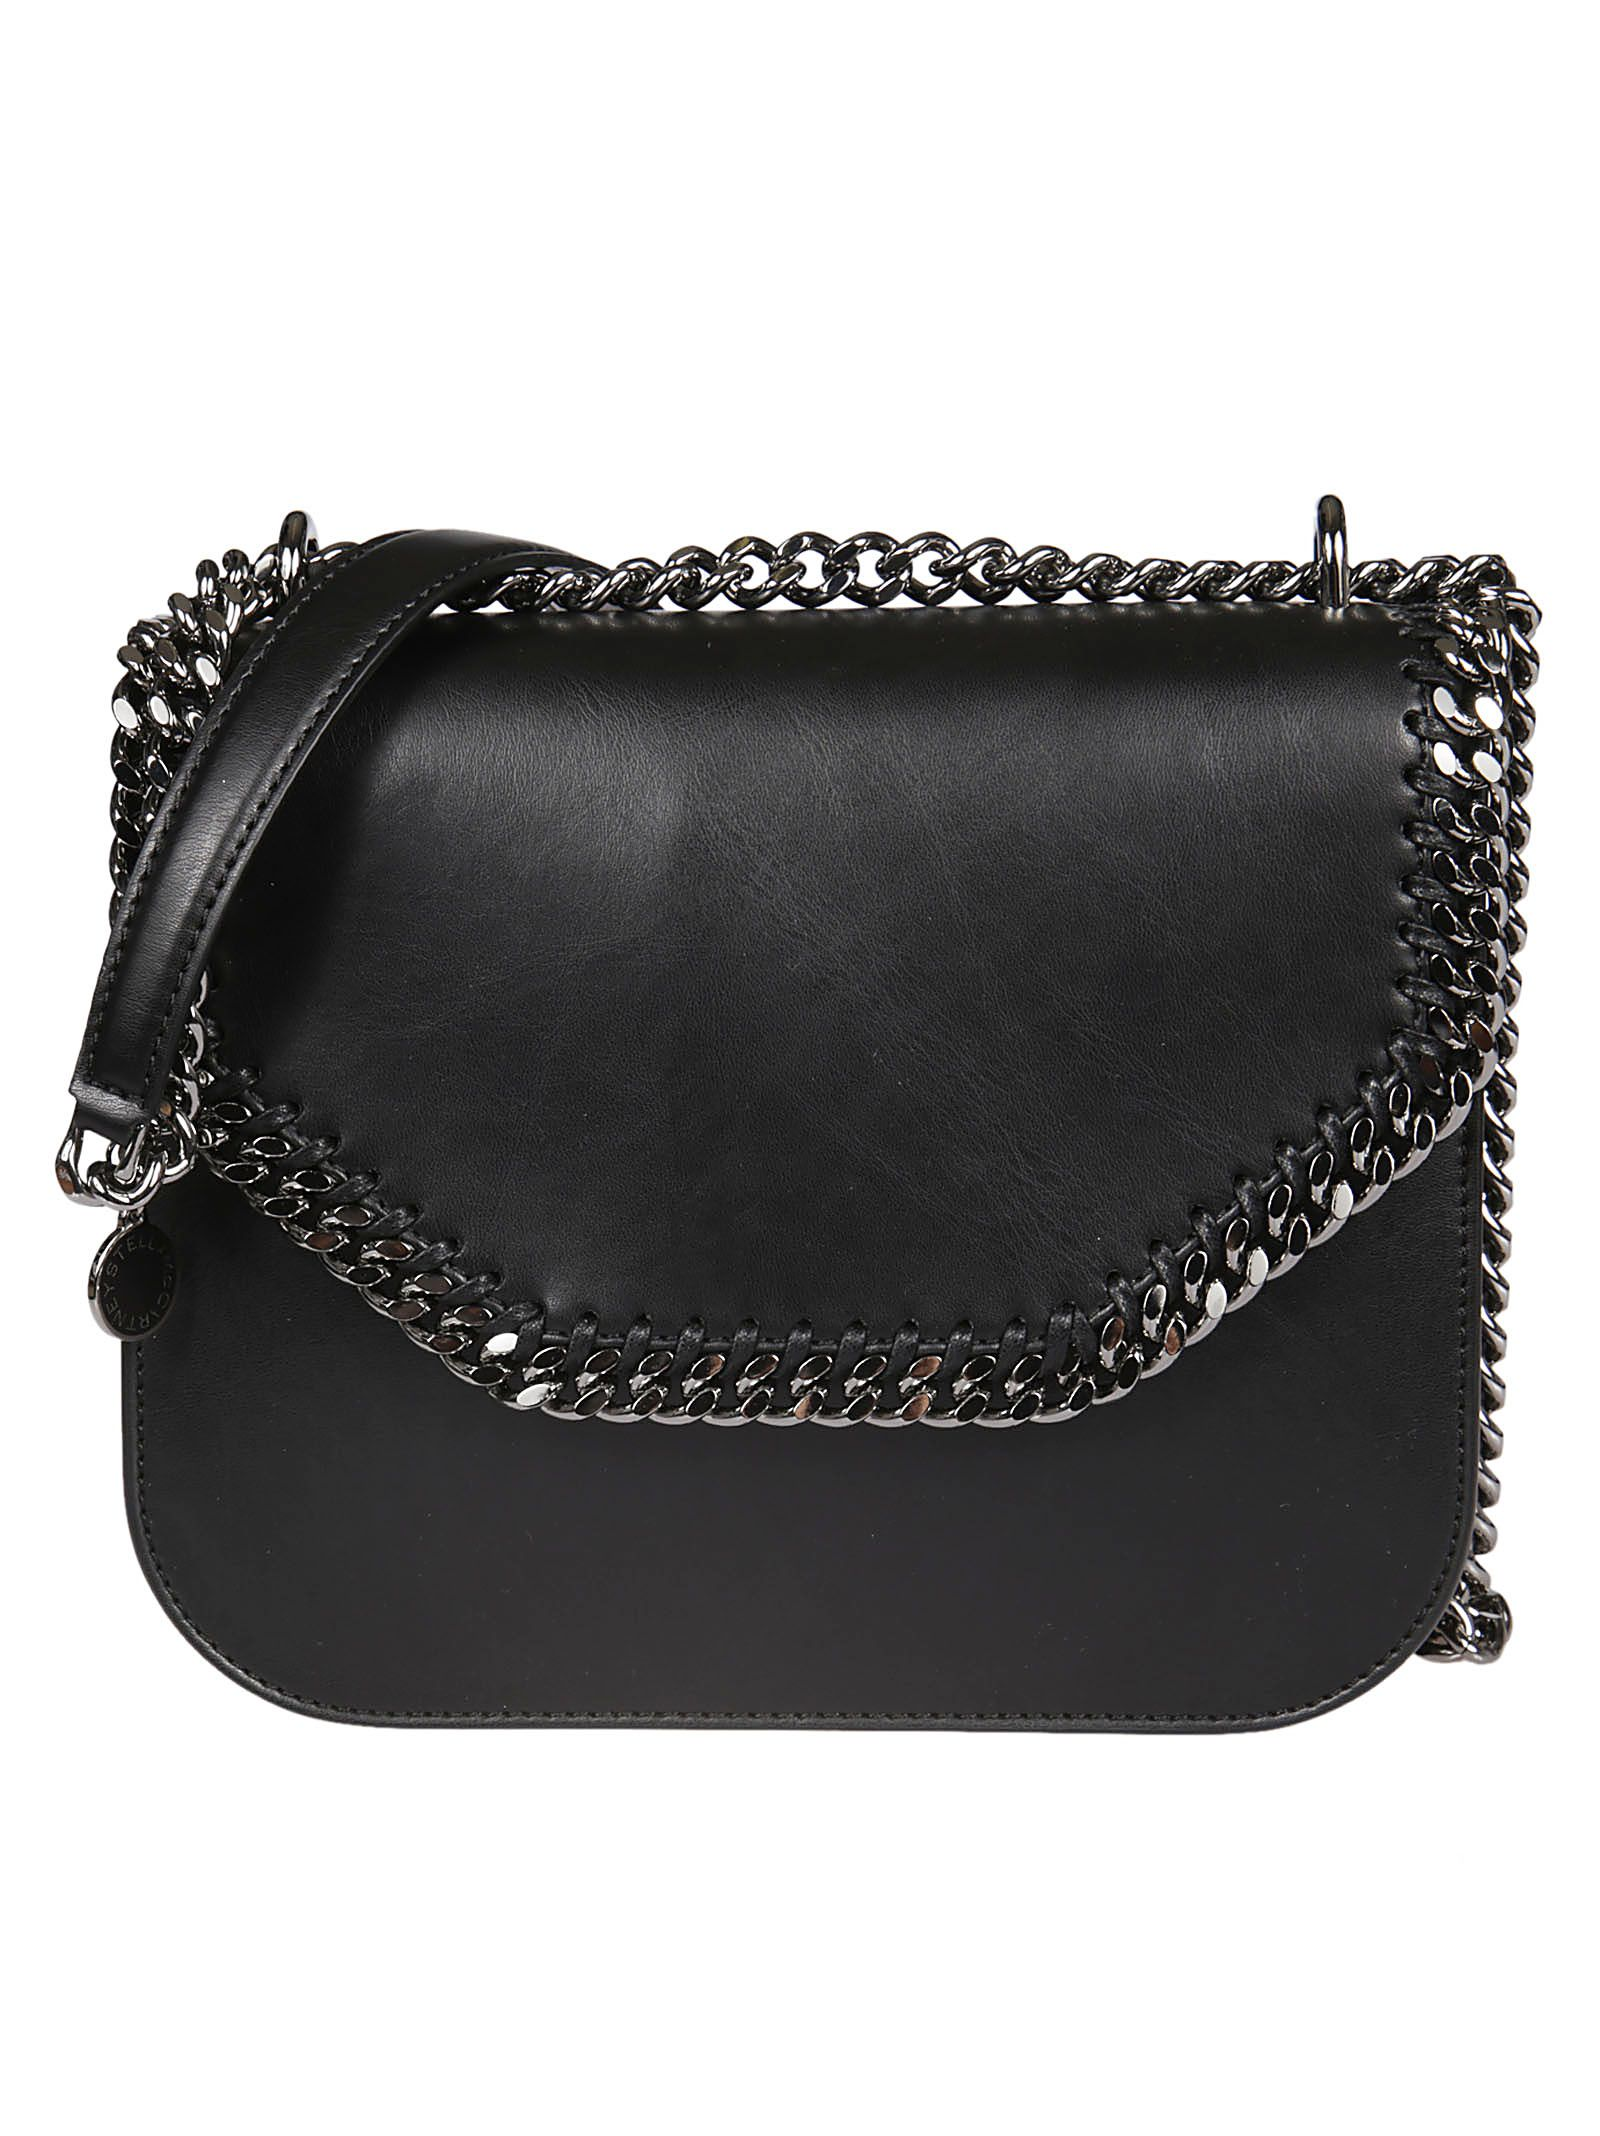 FALABELLA BOX MEDIUM FAUX LEATHER SHOULDER BAG